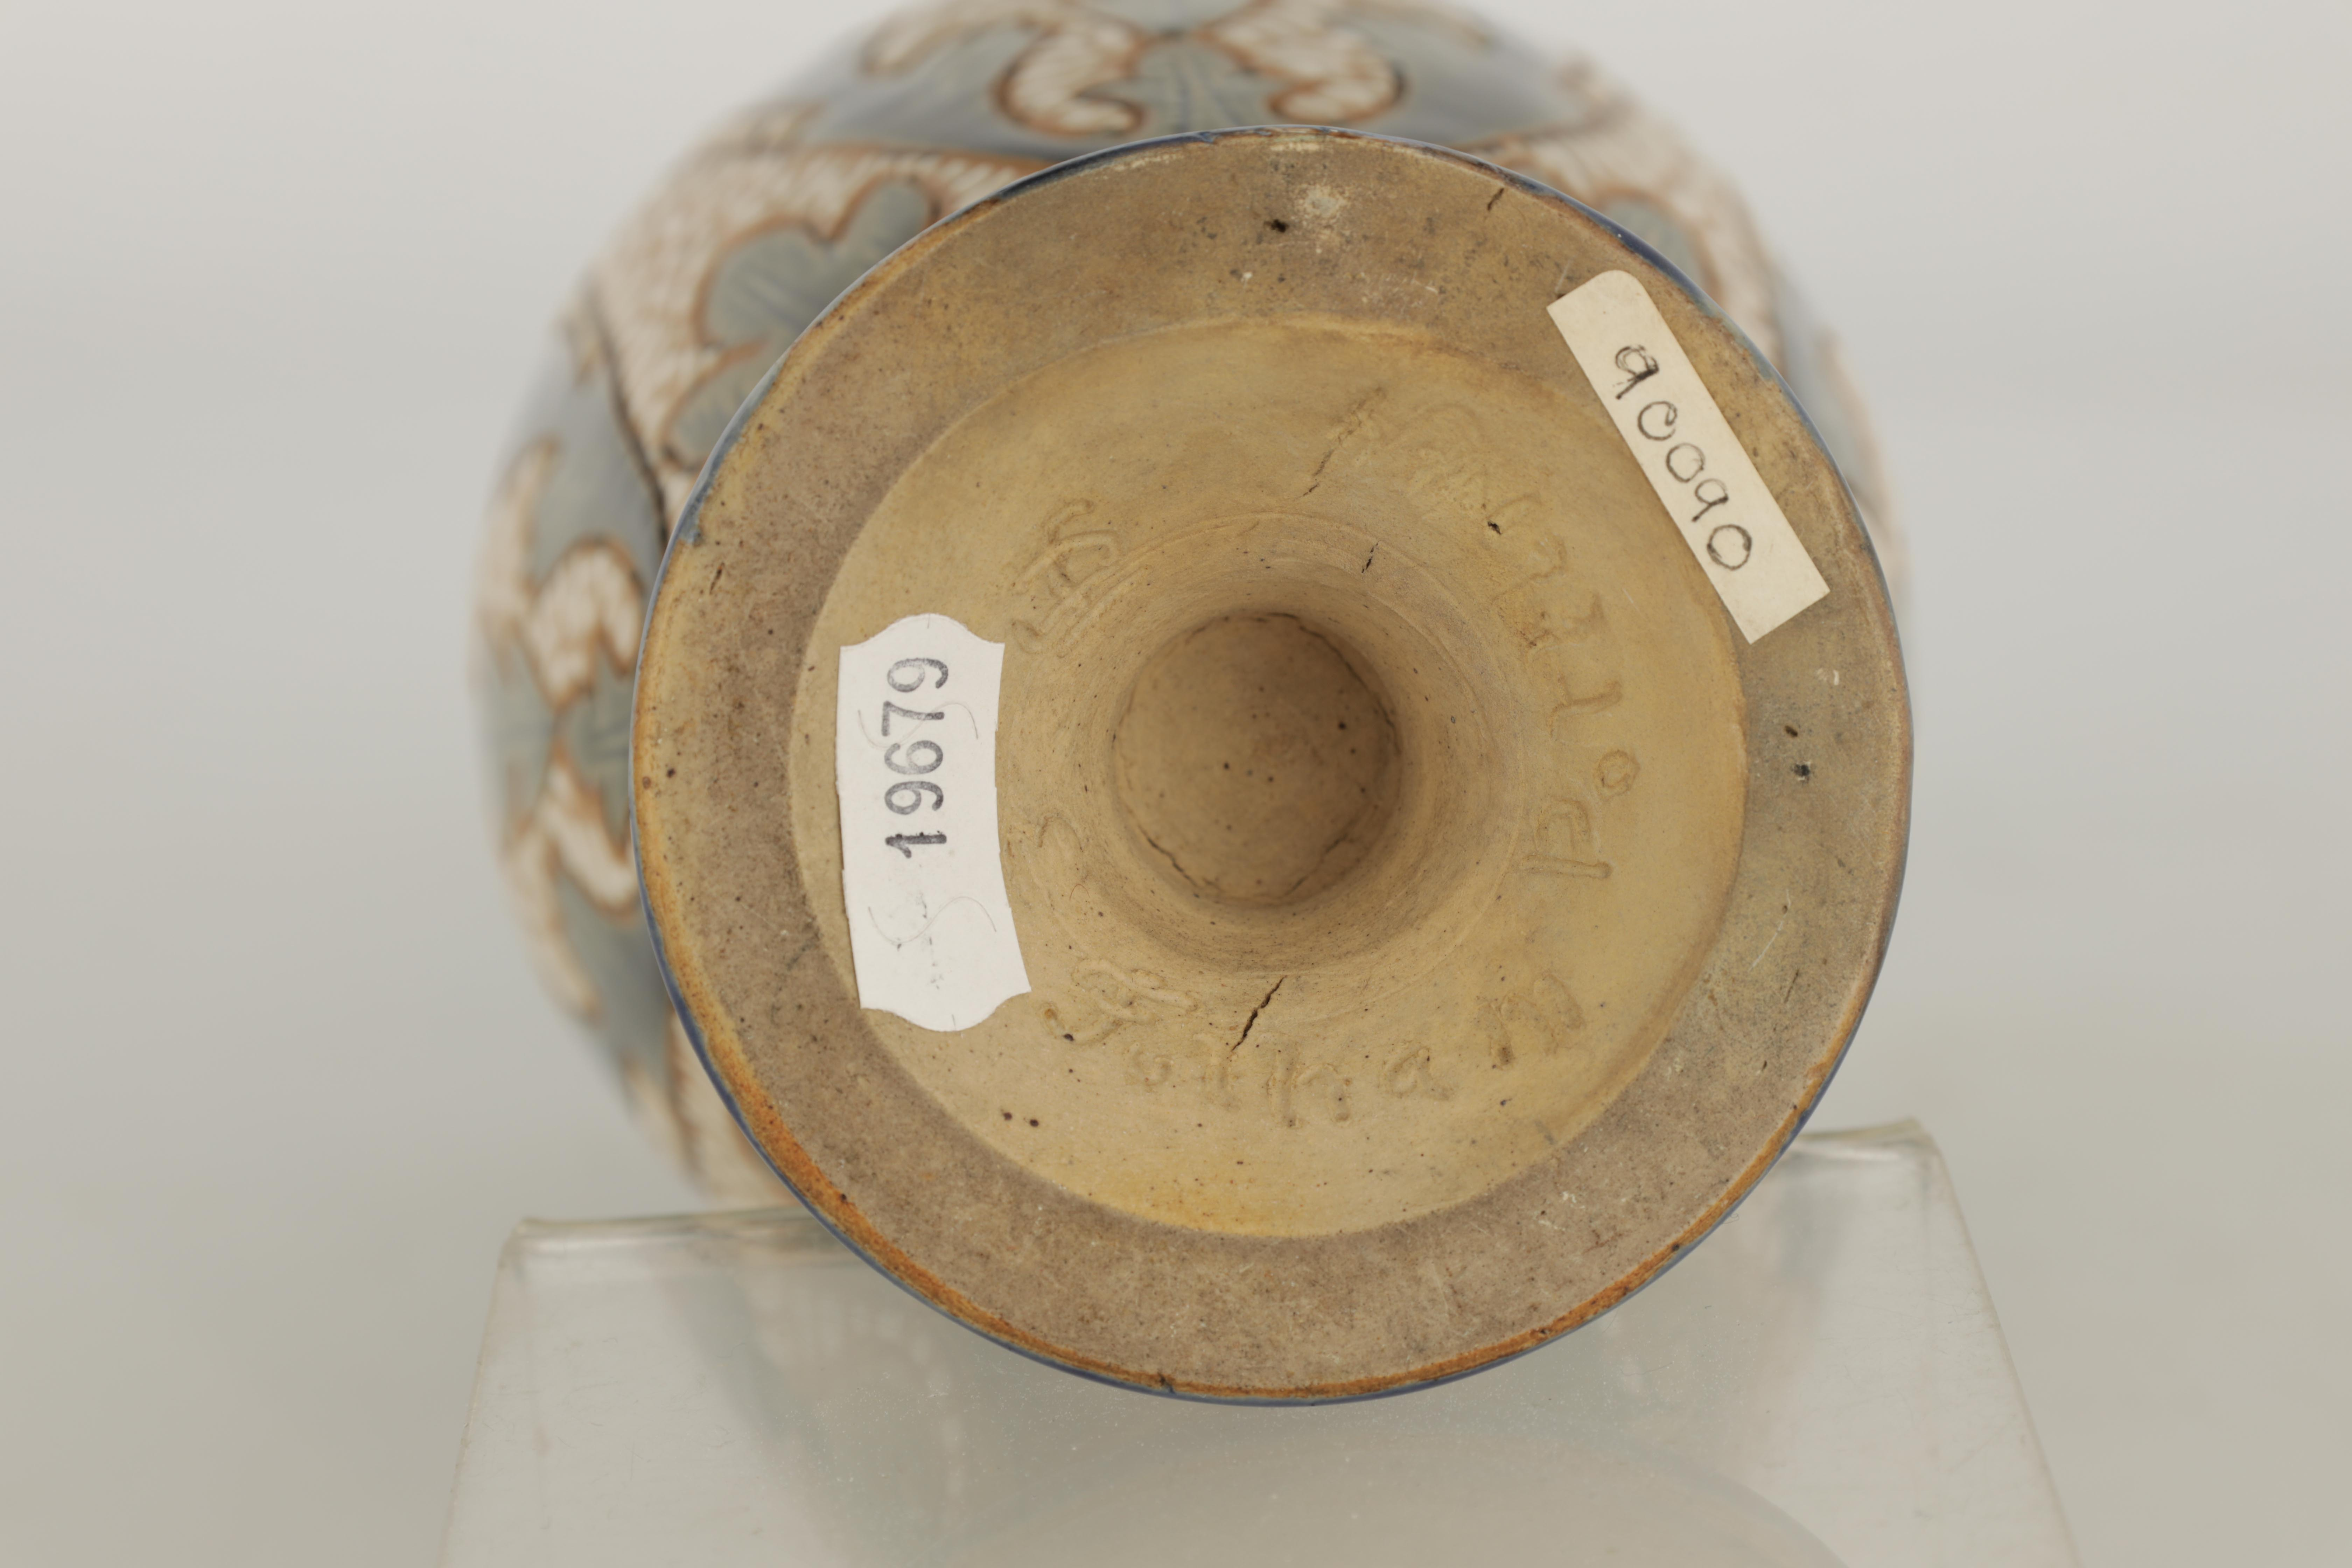 AN UNUSUAL LATE 19TH CENTURY FULHAM POTTERY STONEWARE FOOTED OVOID VASE WITH FLARED RIM decorated - Image 6 of 6